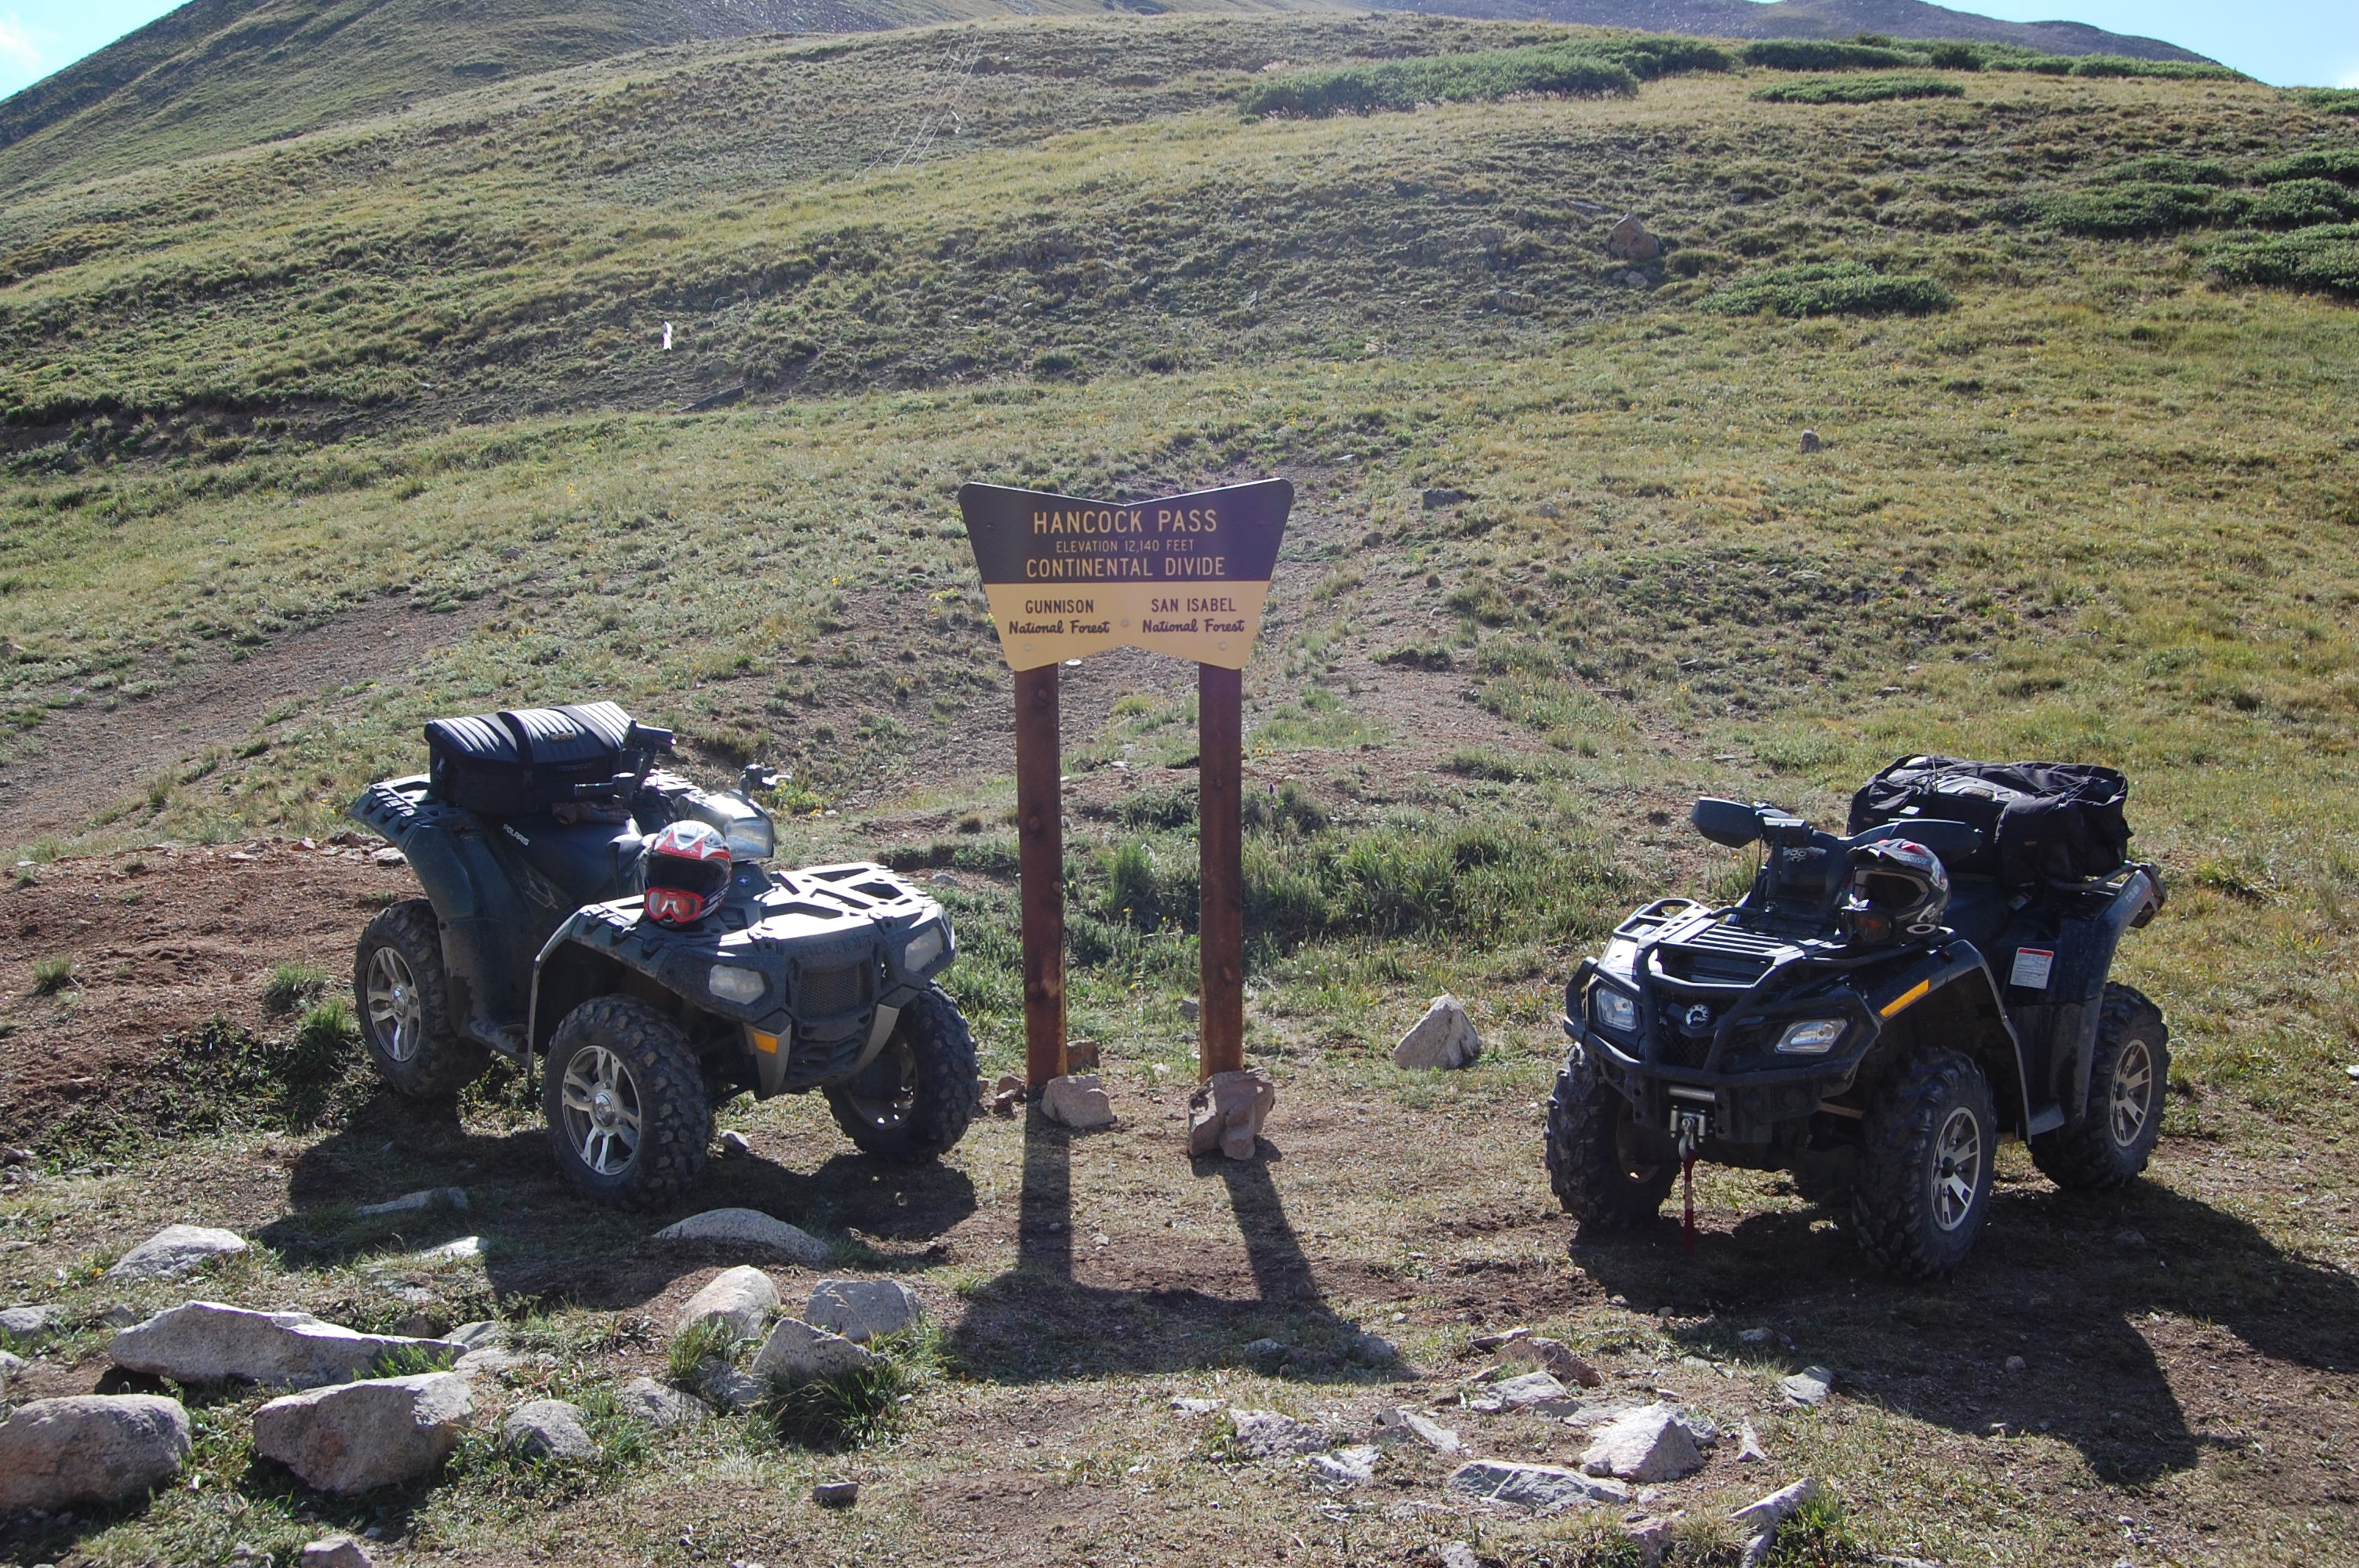 Our Rides on Hancock Pass